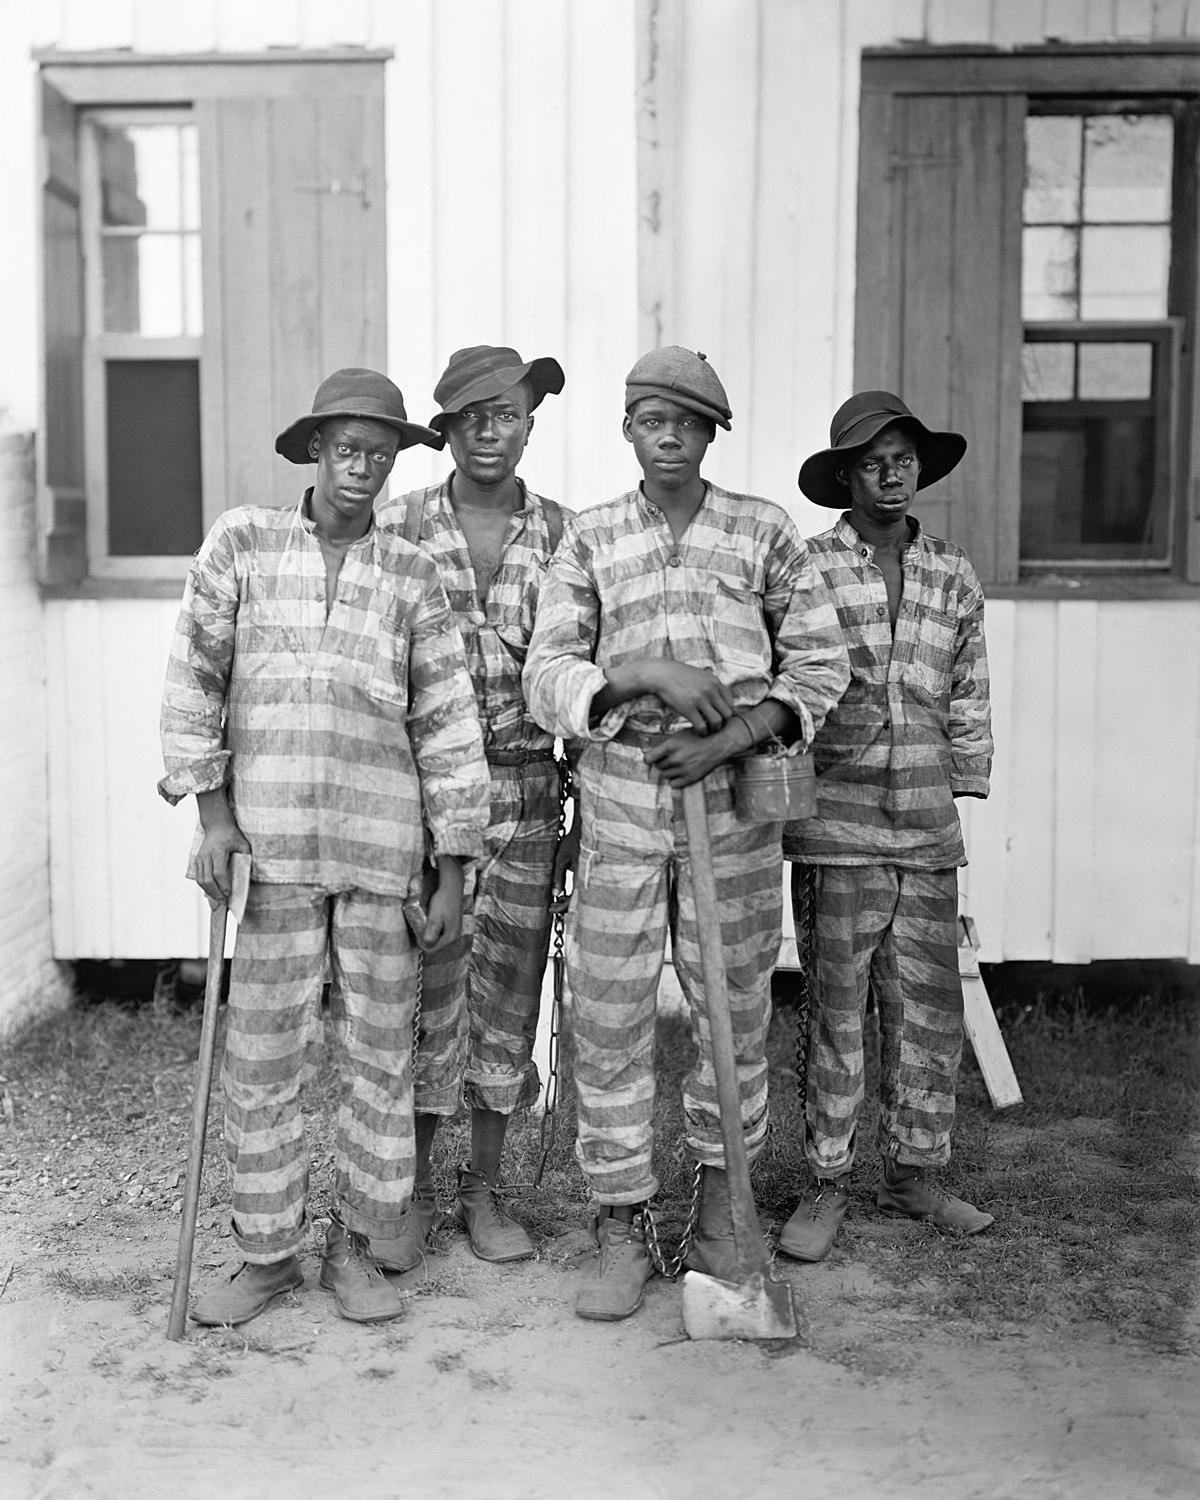 1200px-A_Southern_chain_gang_c1903-restore